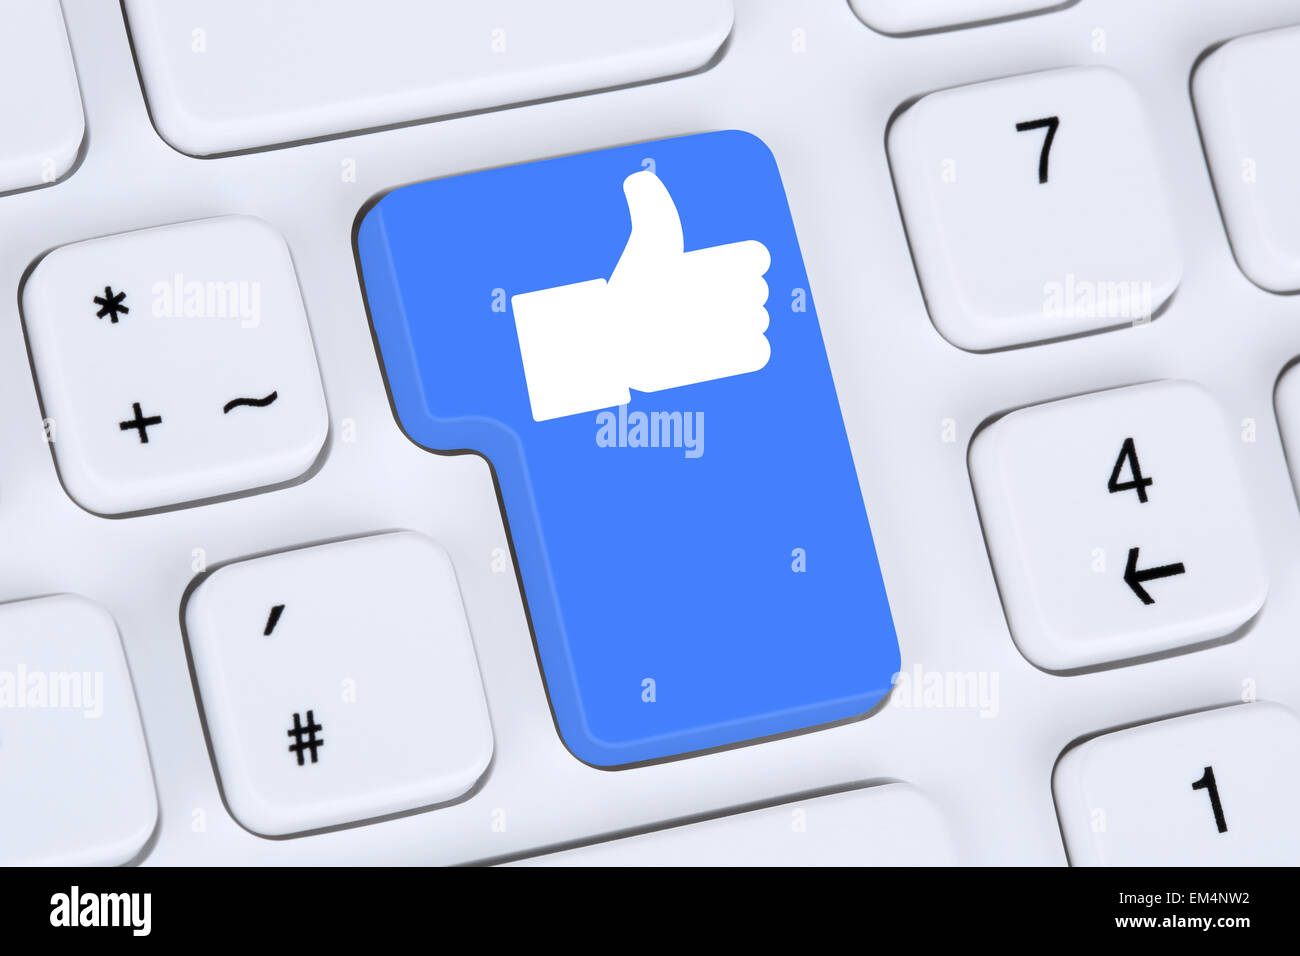 Comme l'icône bouton thumb up symbole social media ou réseau sur internet computer keyboard Photo Stock